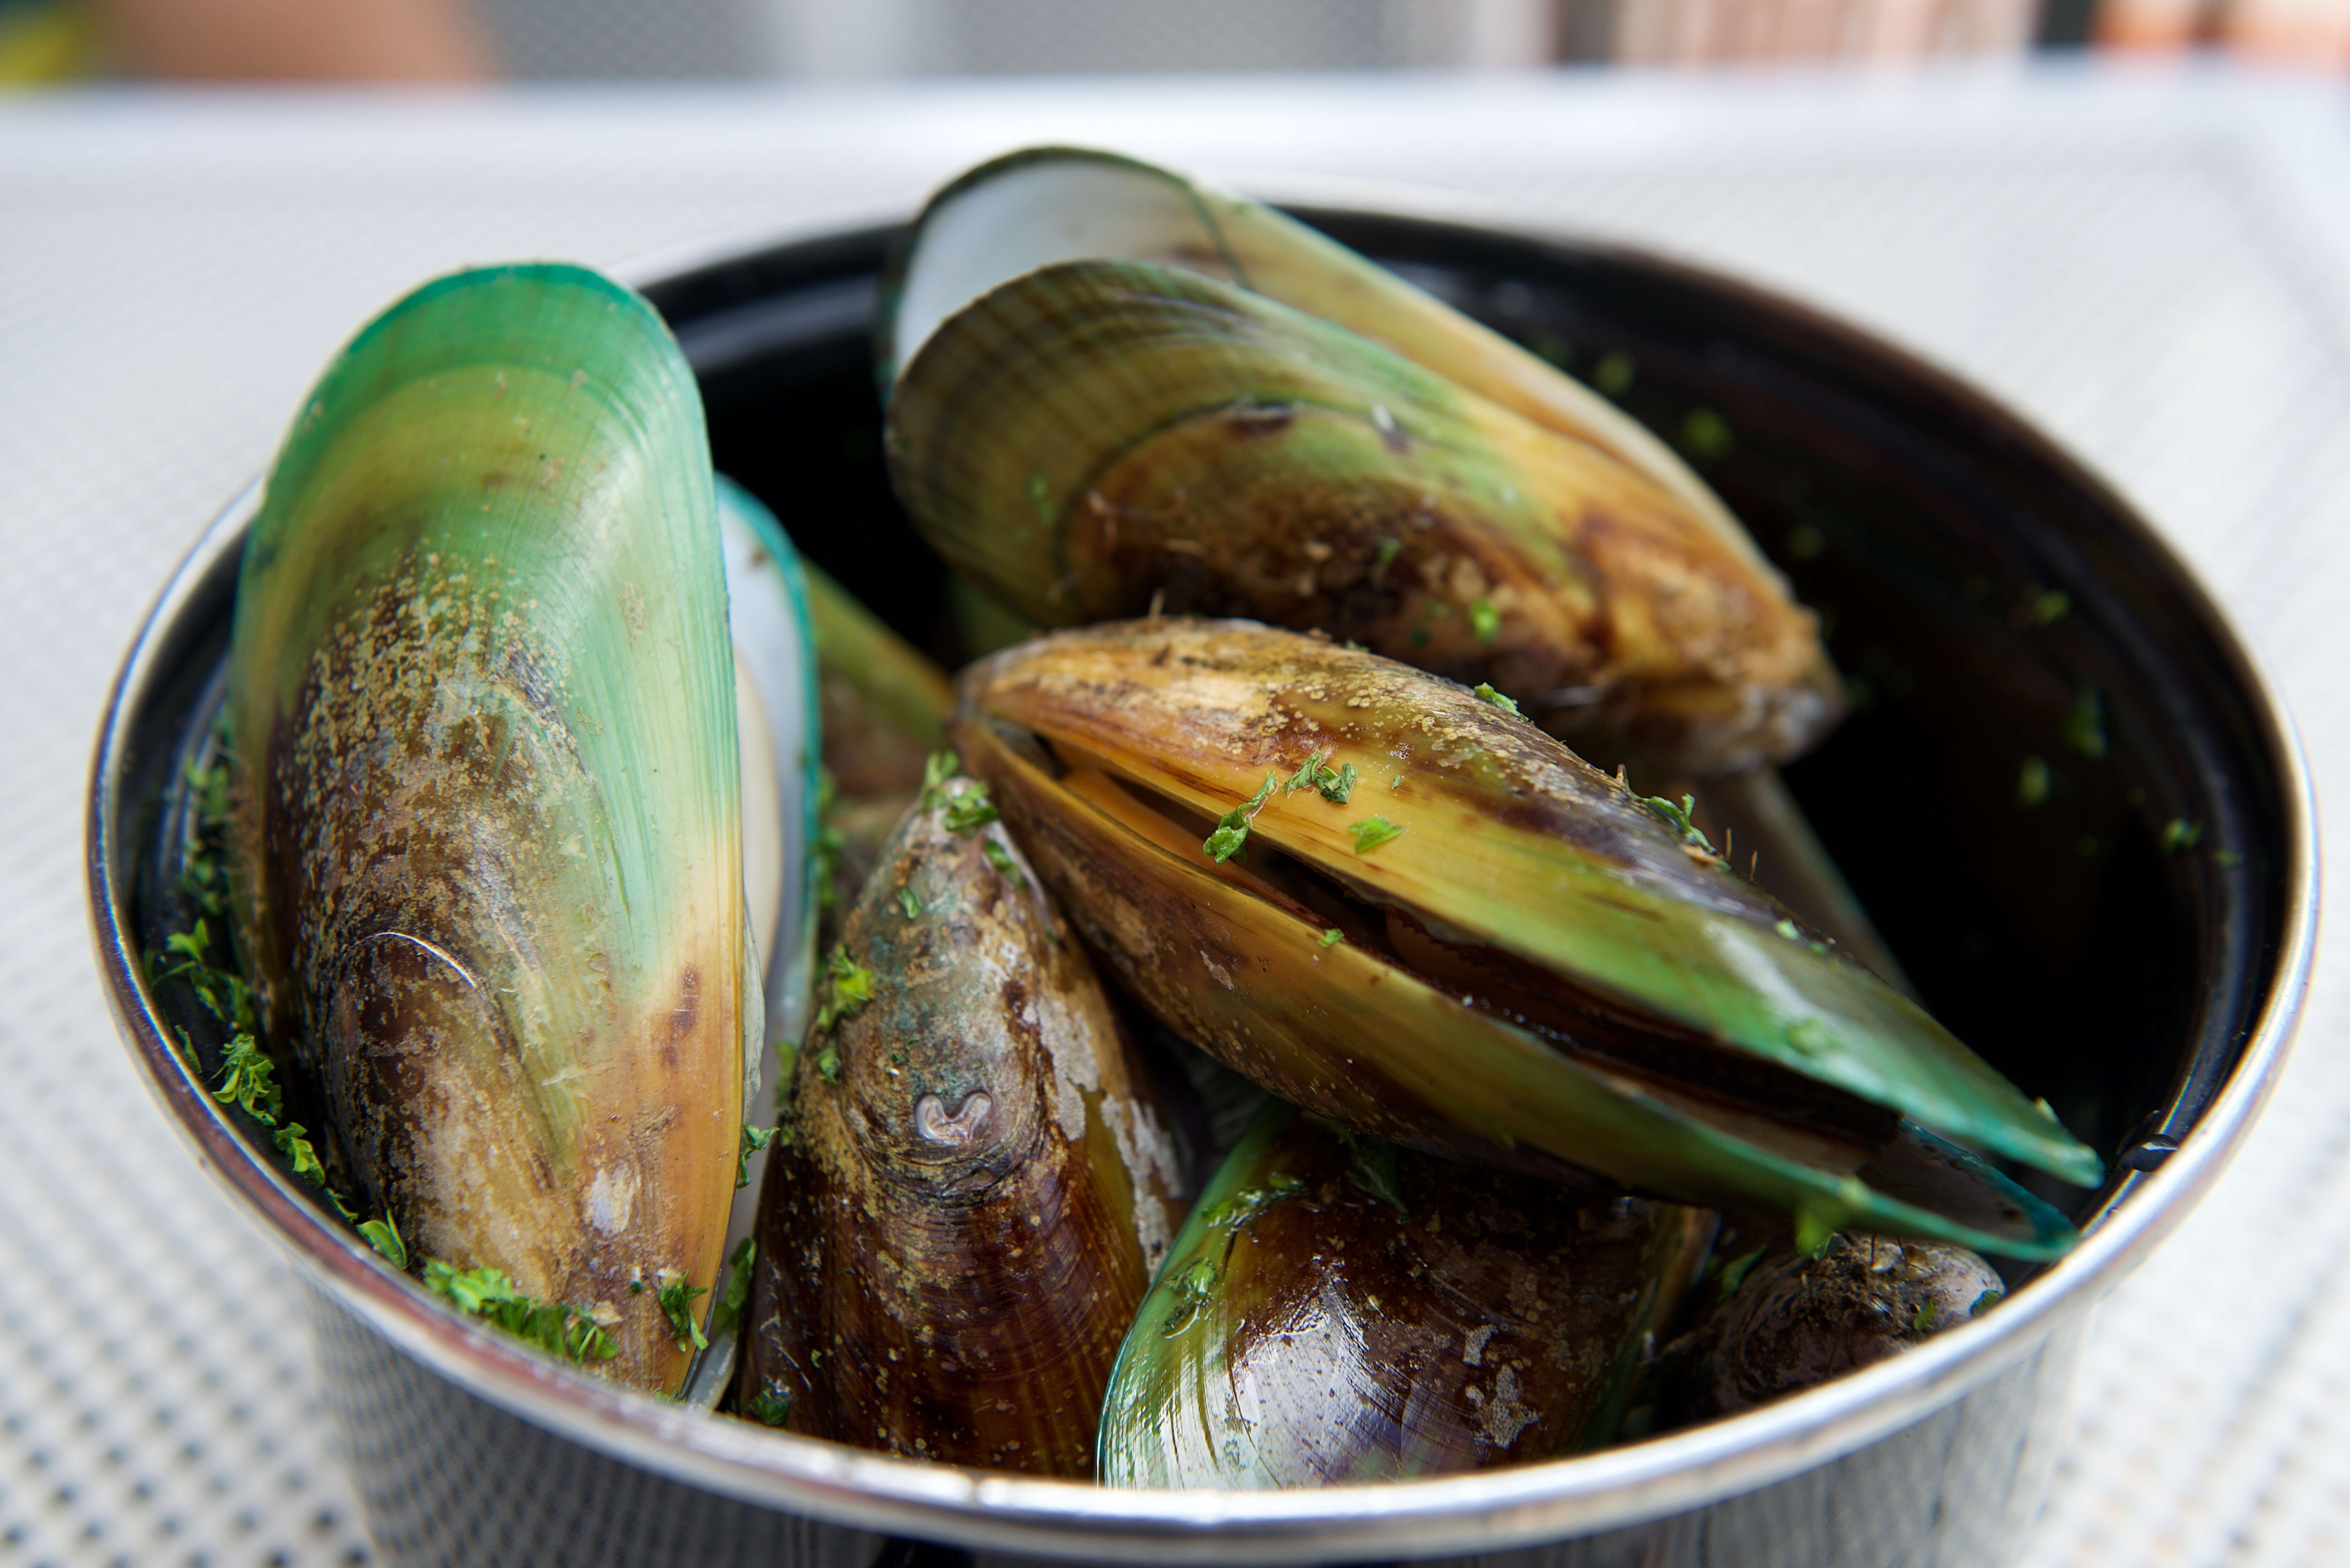 A bowl of green lipped mussels to be used for its anti-inflammatory properties.